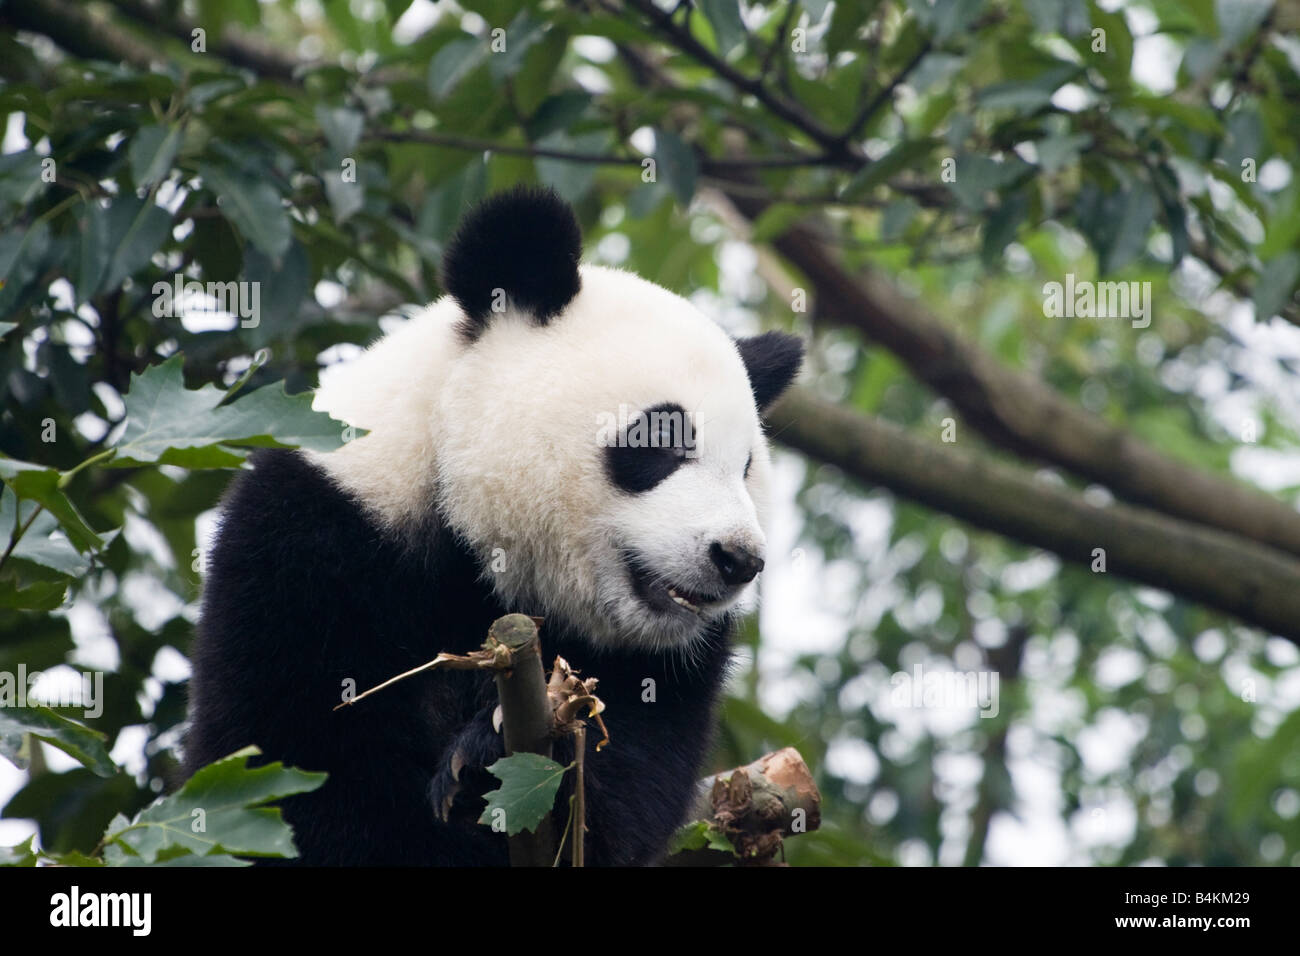 A giant panda (Ailuropoda melanoleuca ) relaxing in the Chengdu Panda Breeding and Research Center China - Stock Image